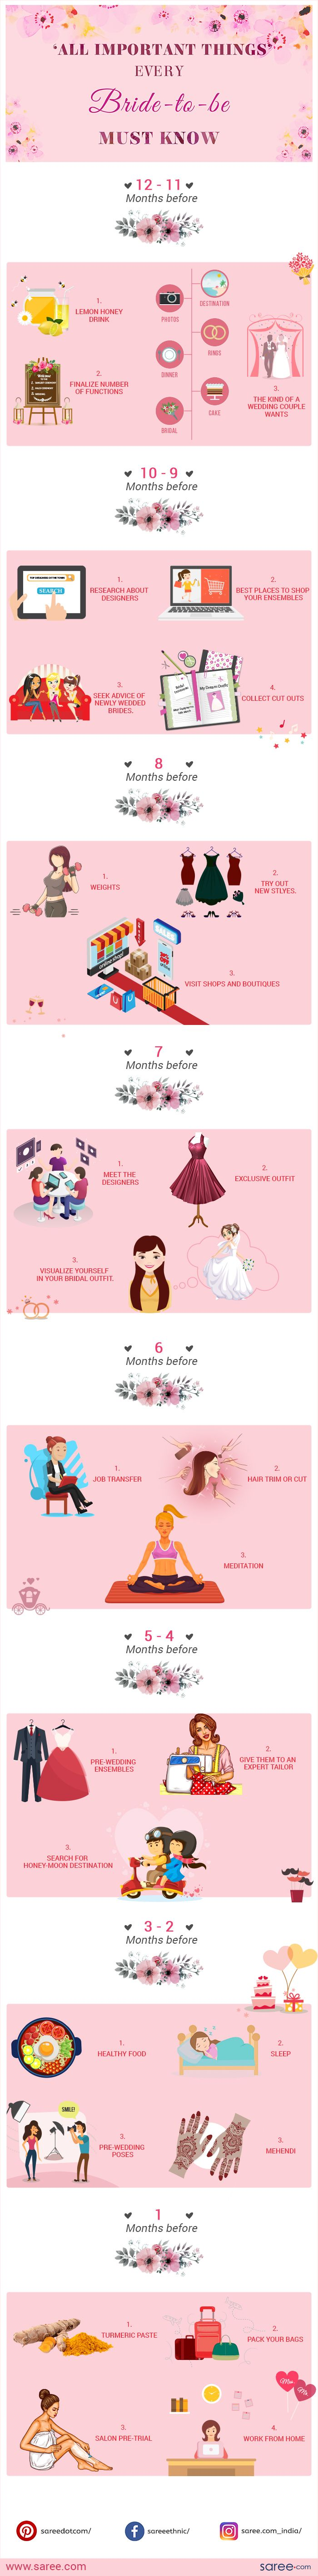 ALL IMPORTANT THINGS EVERY BRIDE-TO-BE MUST KNOW